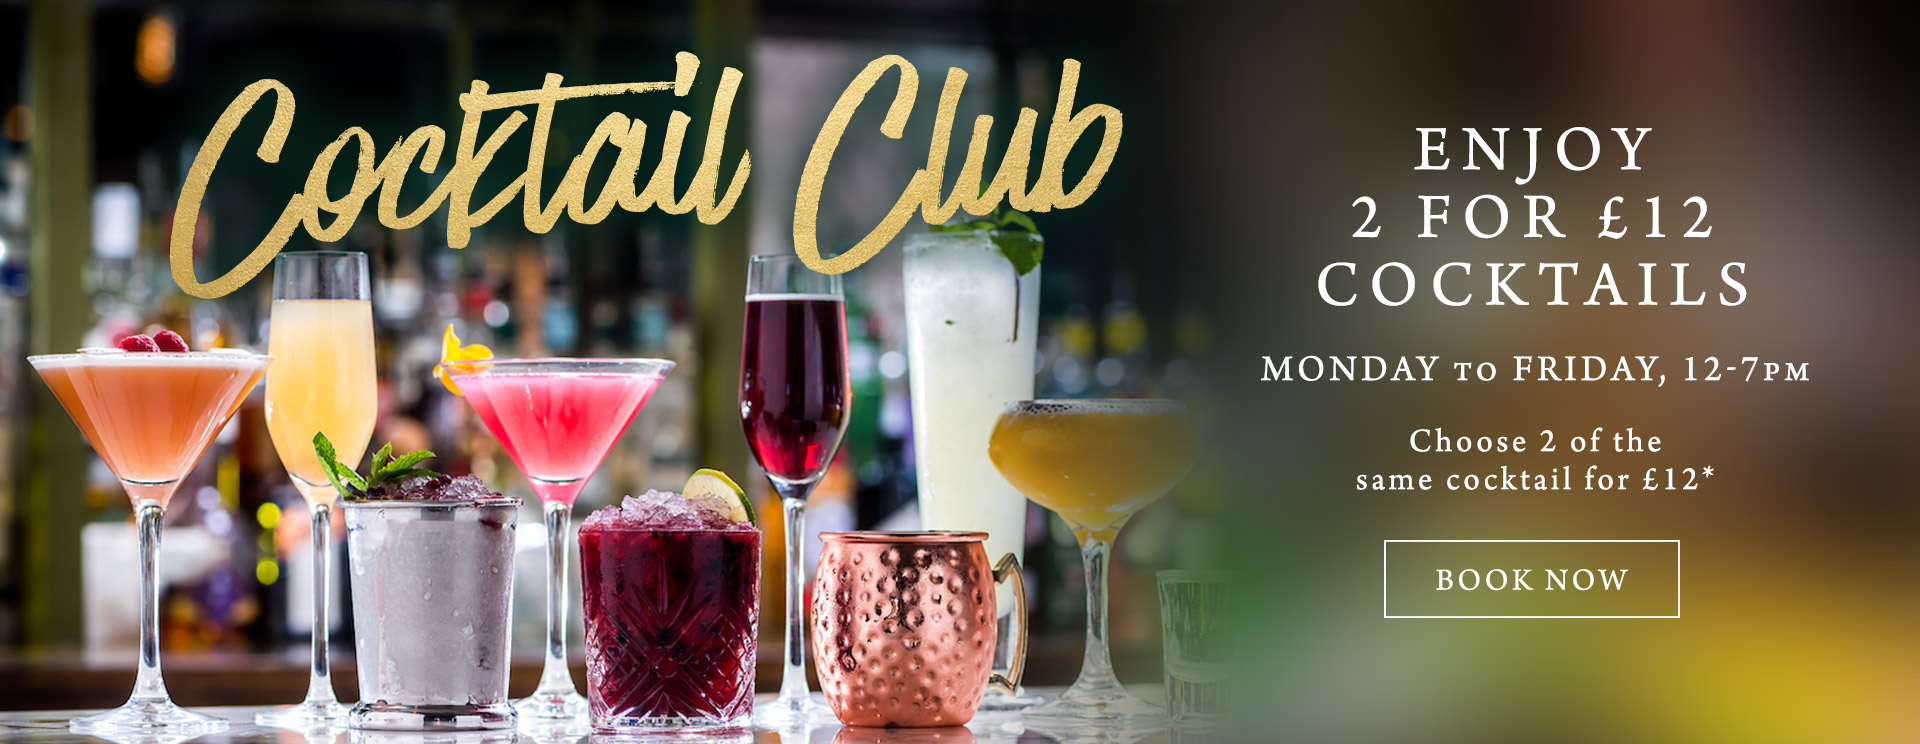 2 for £12 cocktails at The Riverside